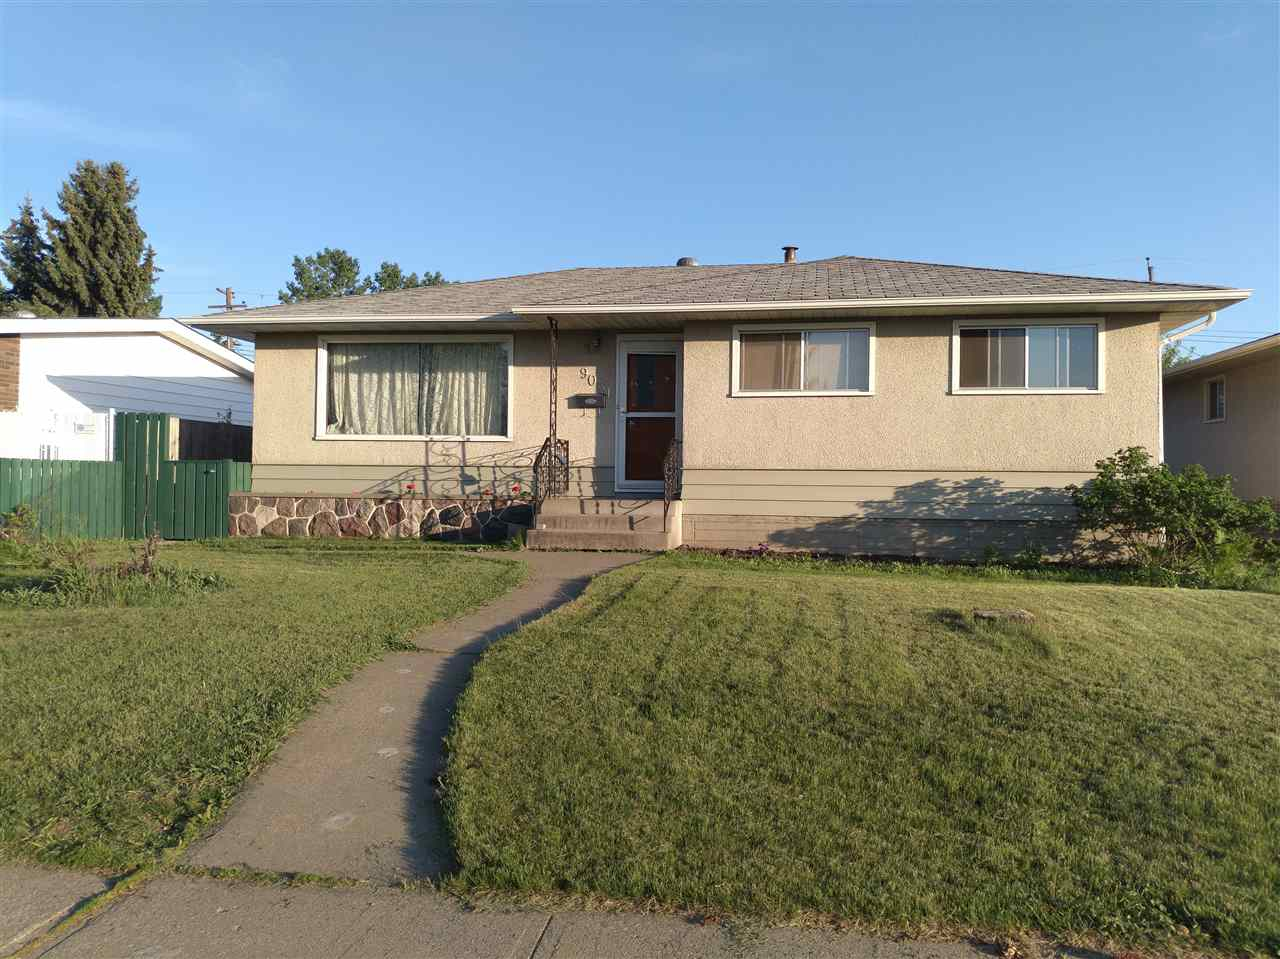 Main Photo: 9031 136 Avenue in Edmonton: Zone 02 House for sale : MLS® # E4067215